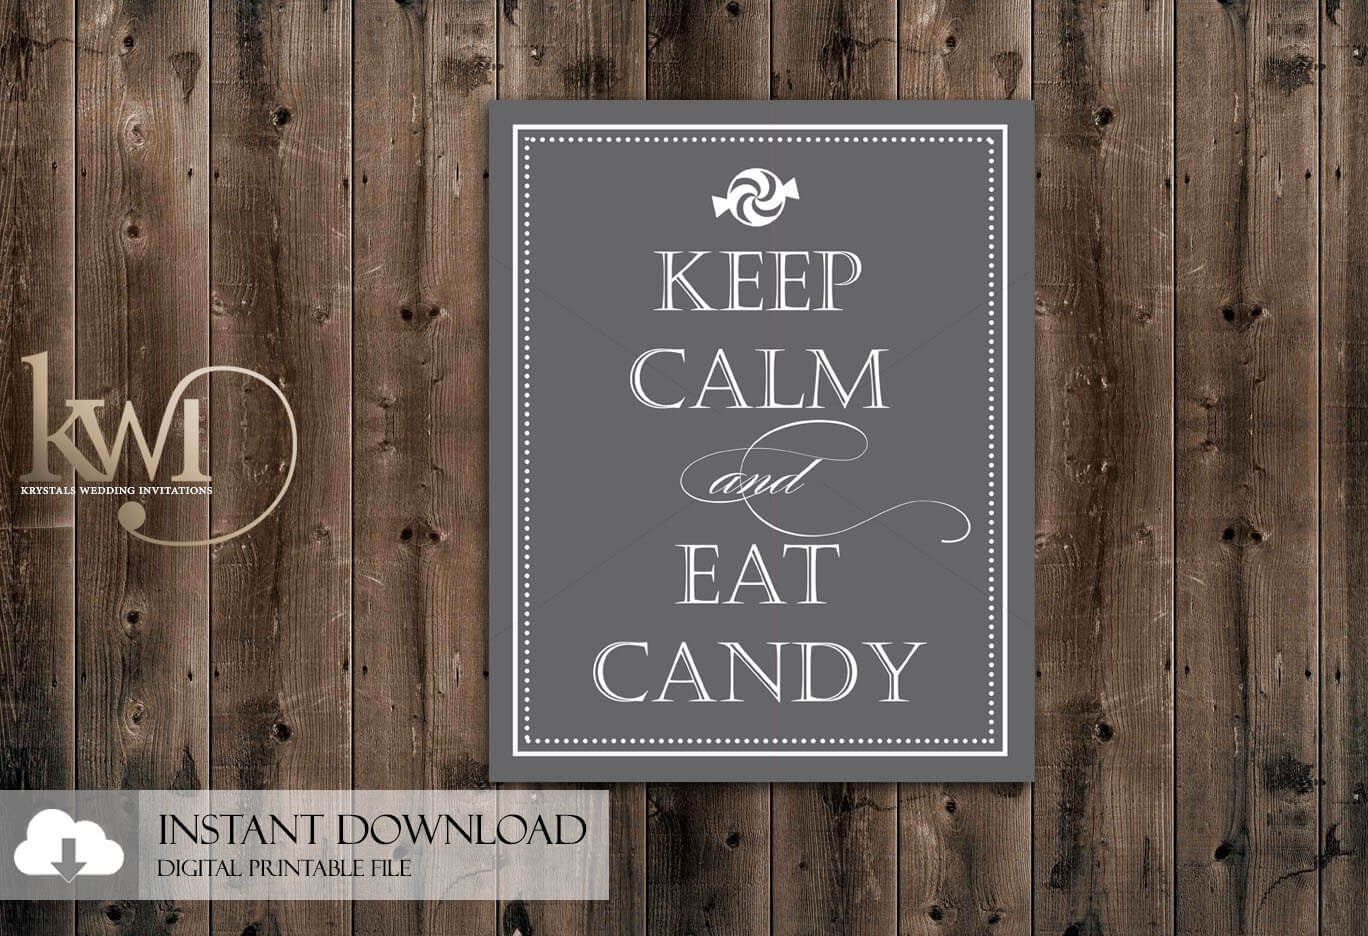 DIY Printables - 8x10 - Keep Calm and Eat Candy Sign - Krystals Wedding Invitations